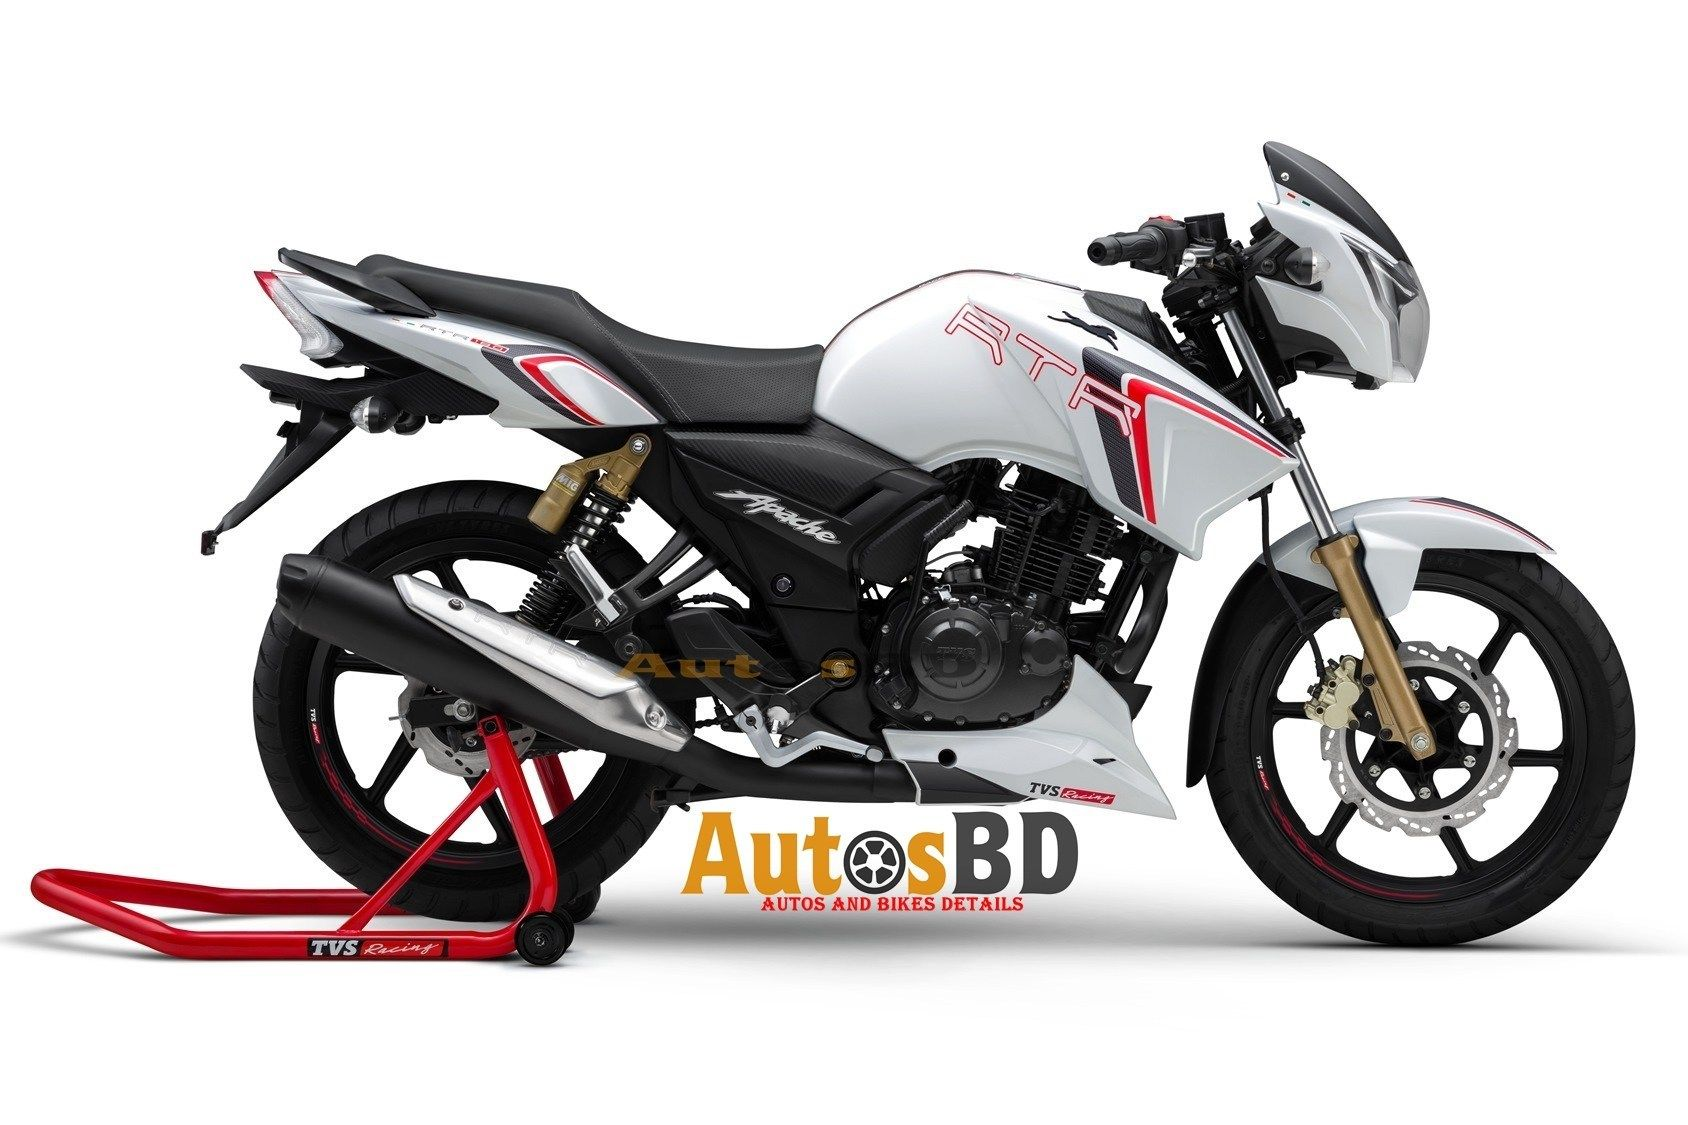 Tvs Apache Rtr 180 Race Edition Specification Racing Rtr